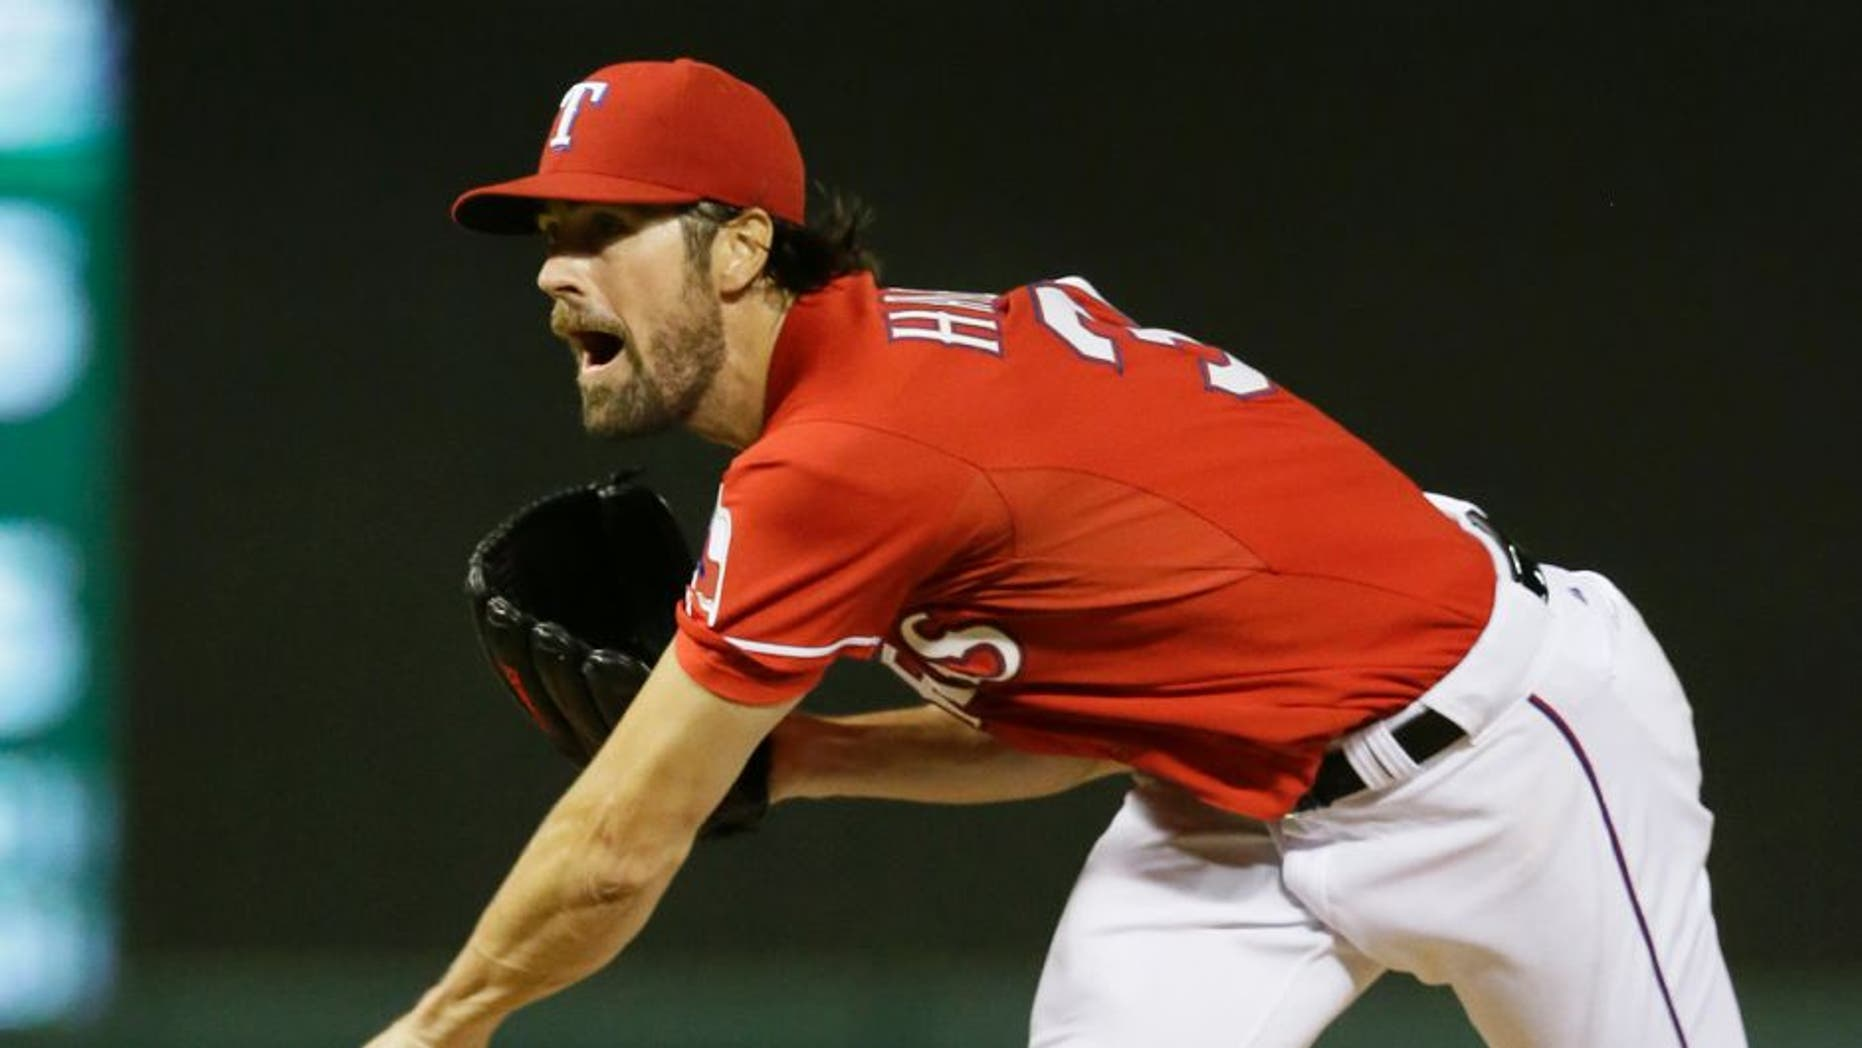 Texas Rangers starter Cole Hamels reacts after releasing a pitch during the seventh inning of a baseball game against the Texas Rangers in Arlington, Texas, Saturday, Sept. 19, 2015. The Rangers won 10-1. (AP Photo/LM Otero)